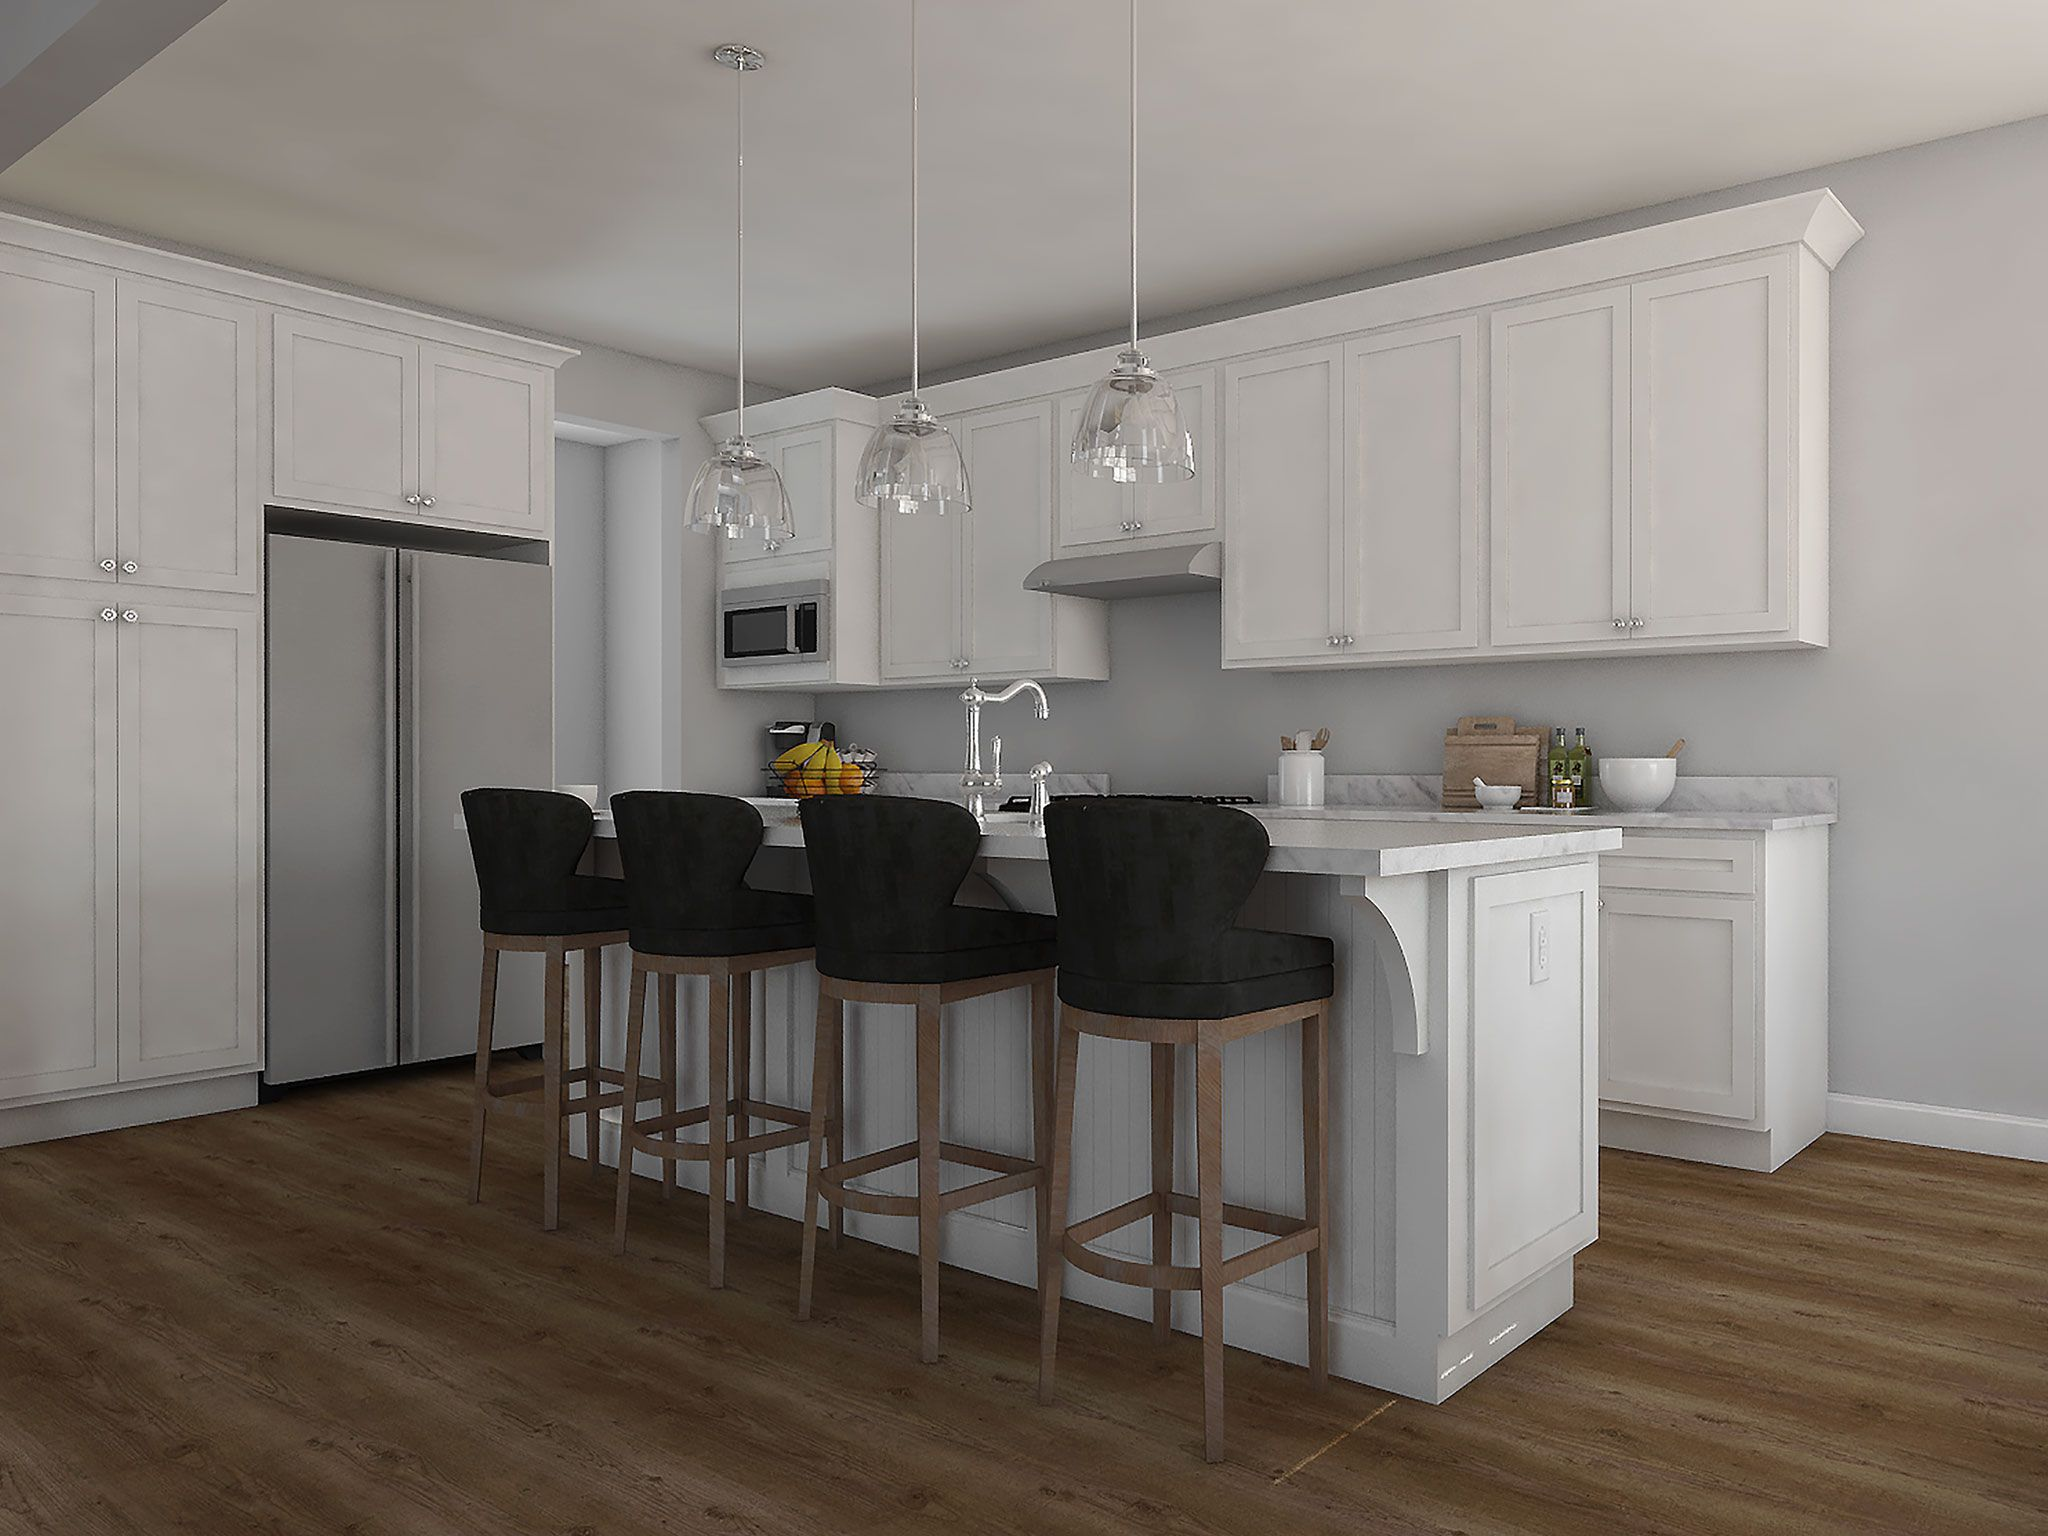 Kitchen featured in the Finch By Charter Homes & Neighborhoods  in Harrisburg, PA